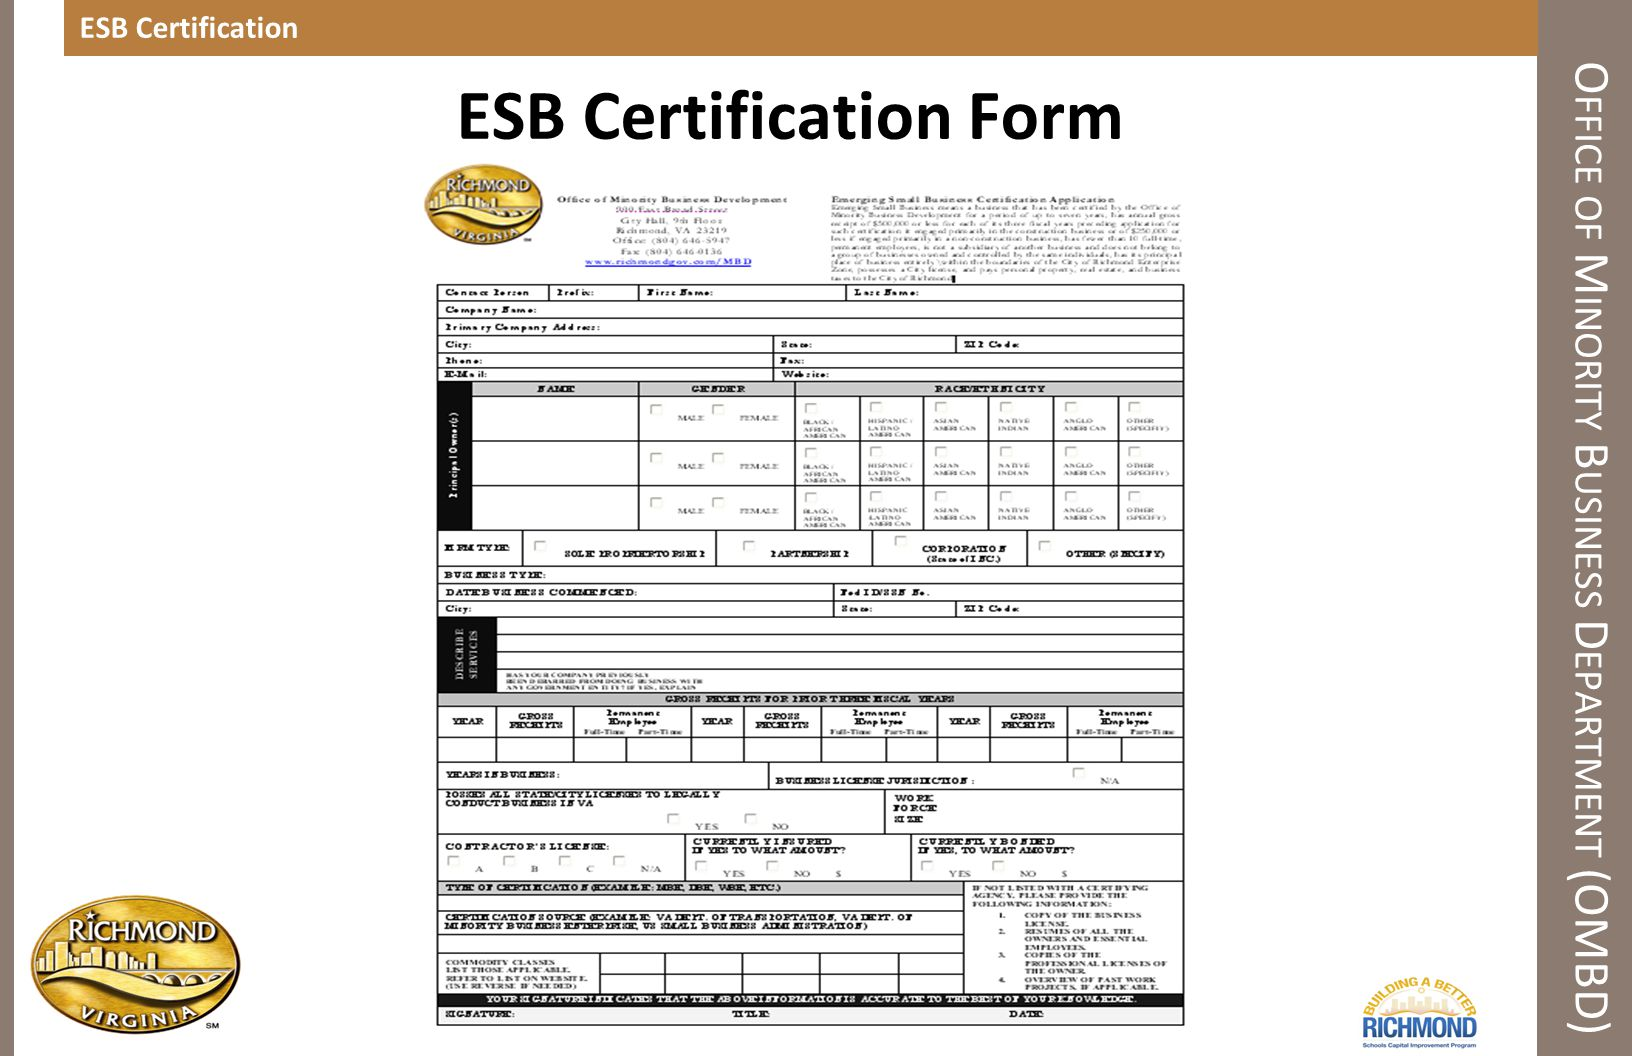 ESB Certification O FFICE OF M INORITY B USINESS D EPARTMENT (OMBD) ESB Certification Form